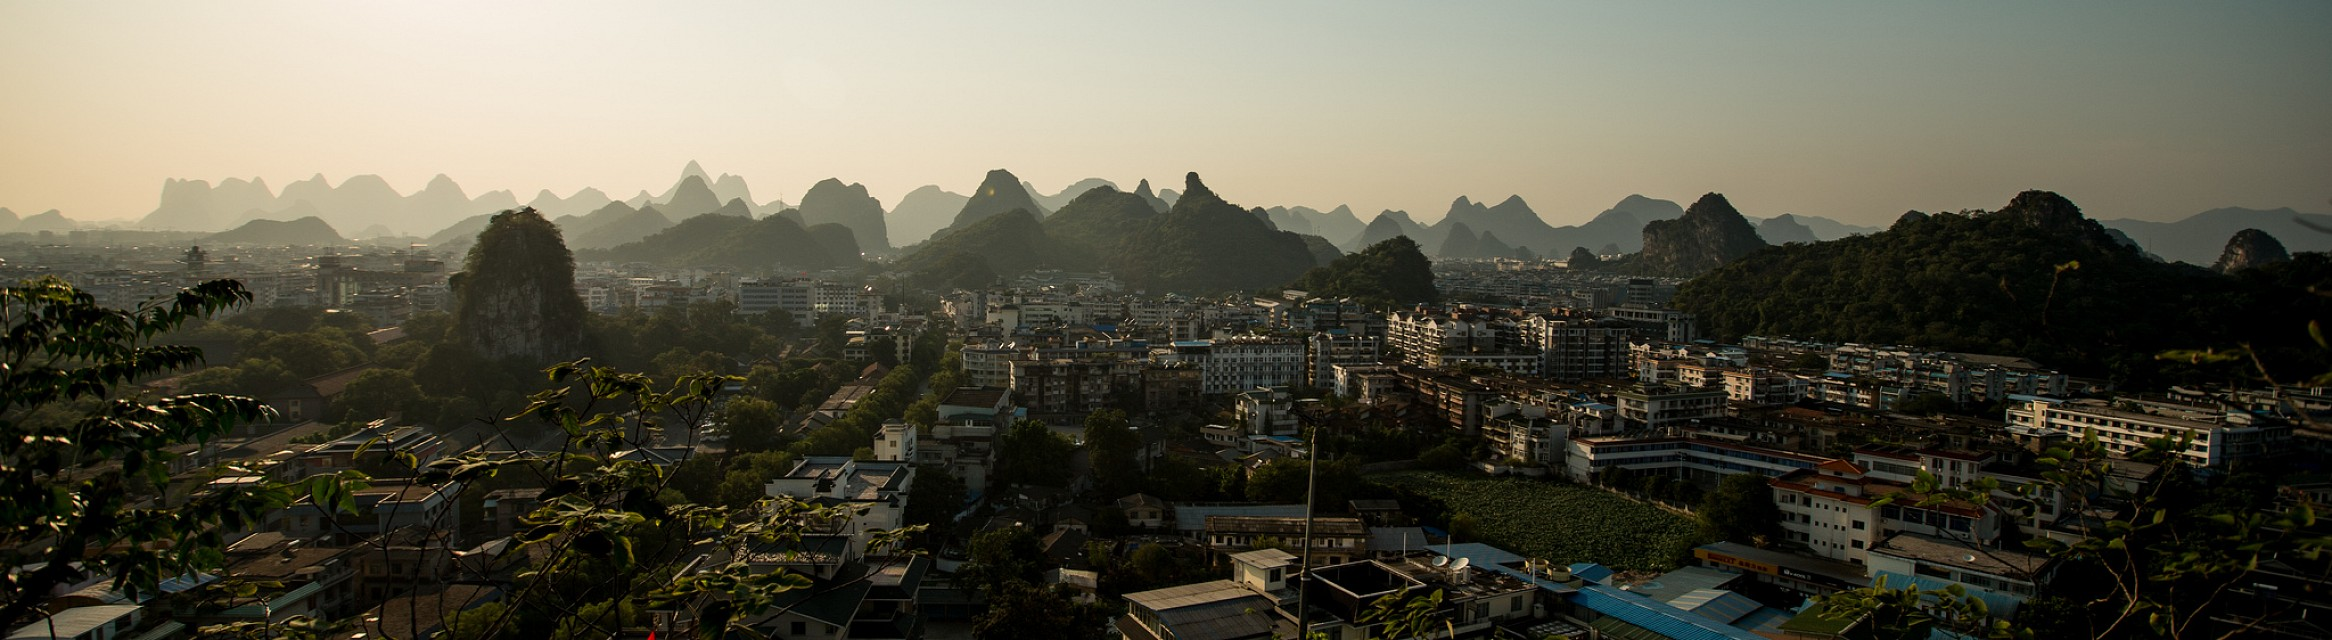 Guilin Skyline Panorama - Guilin